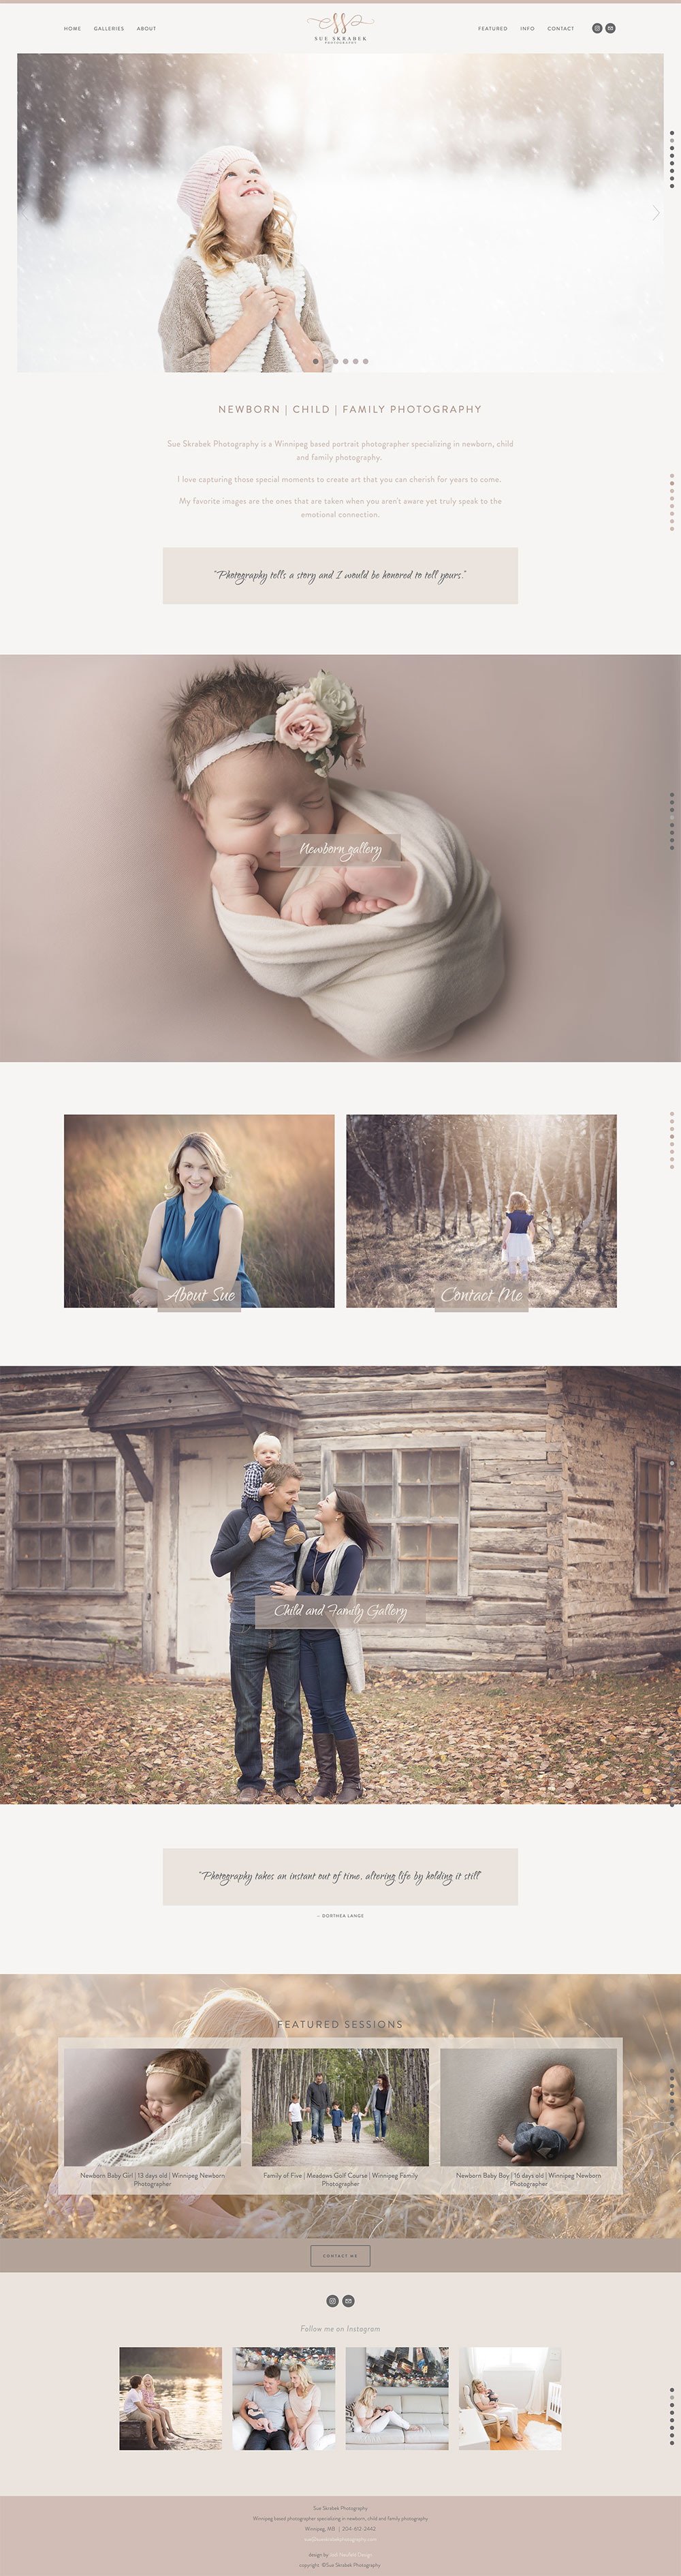 Sue Skrabek photography home page | Web Design by Jodi Neufeld Design | Squarespace web designer